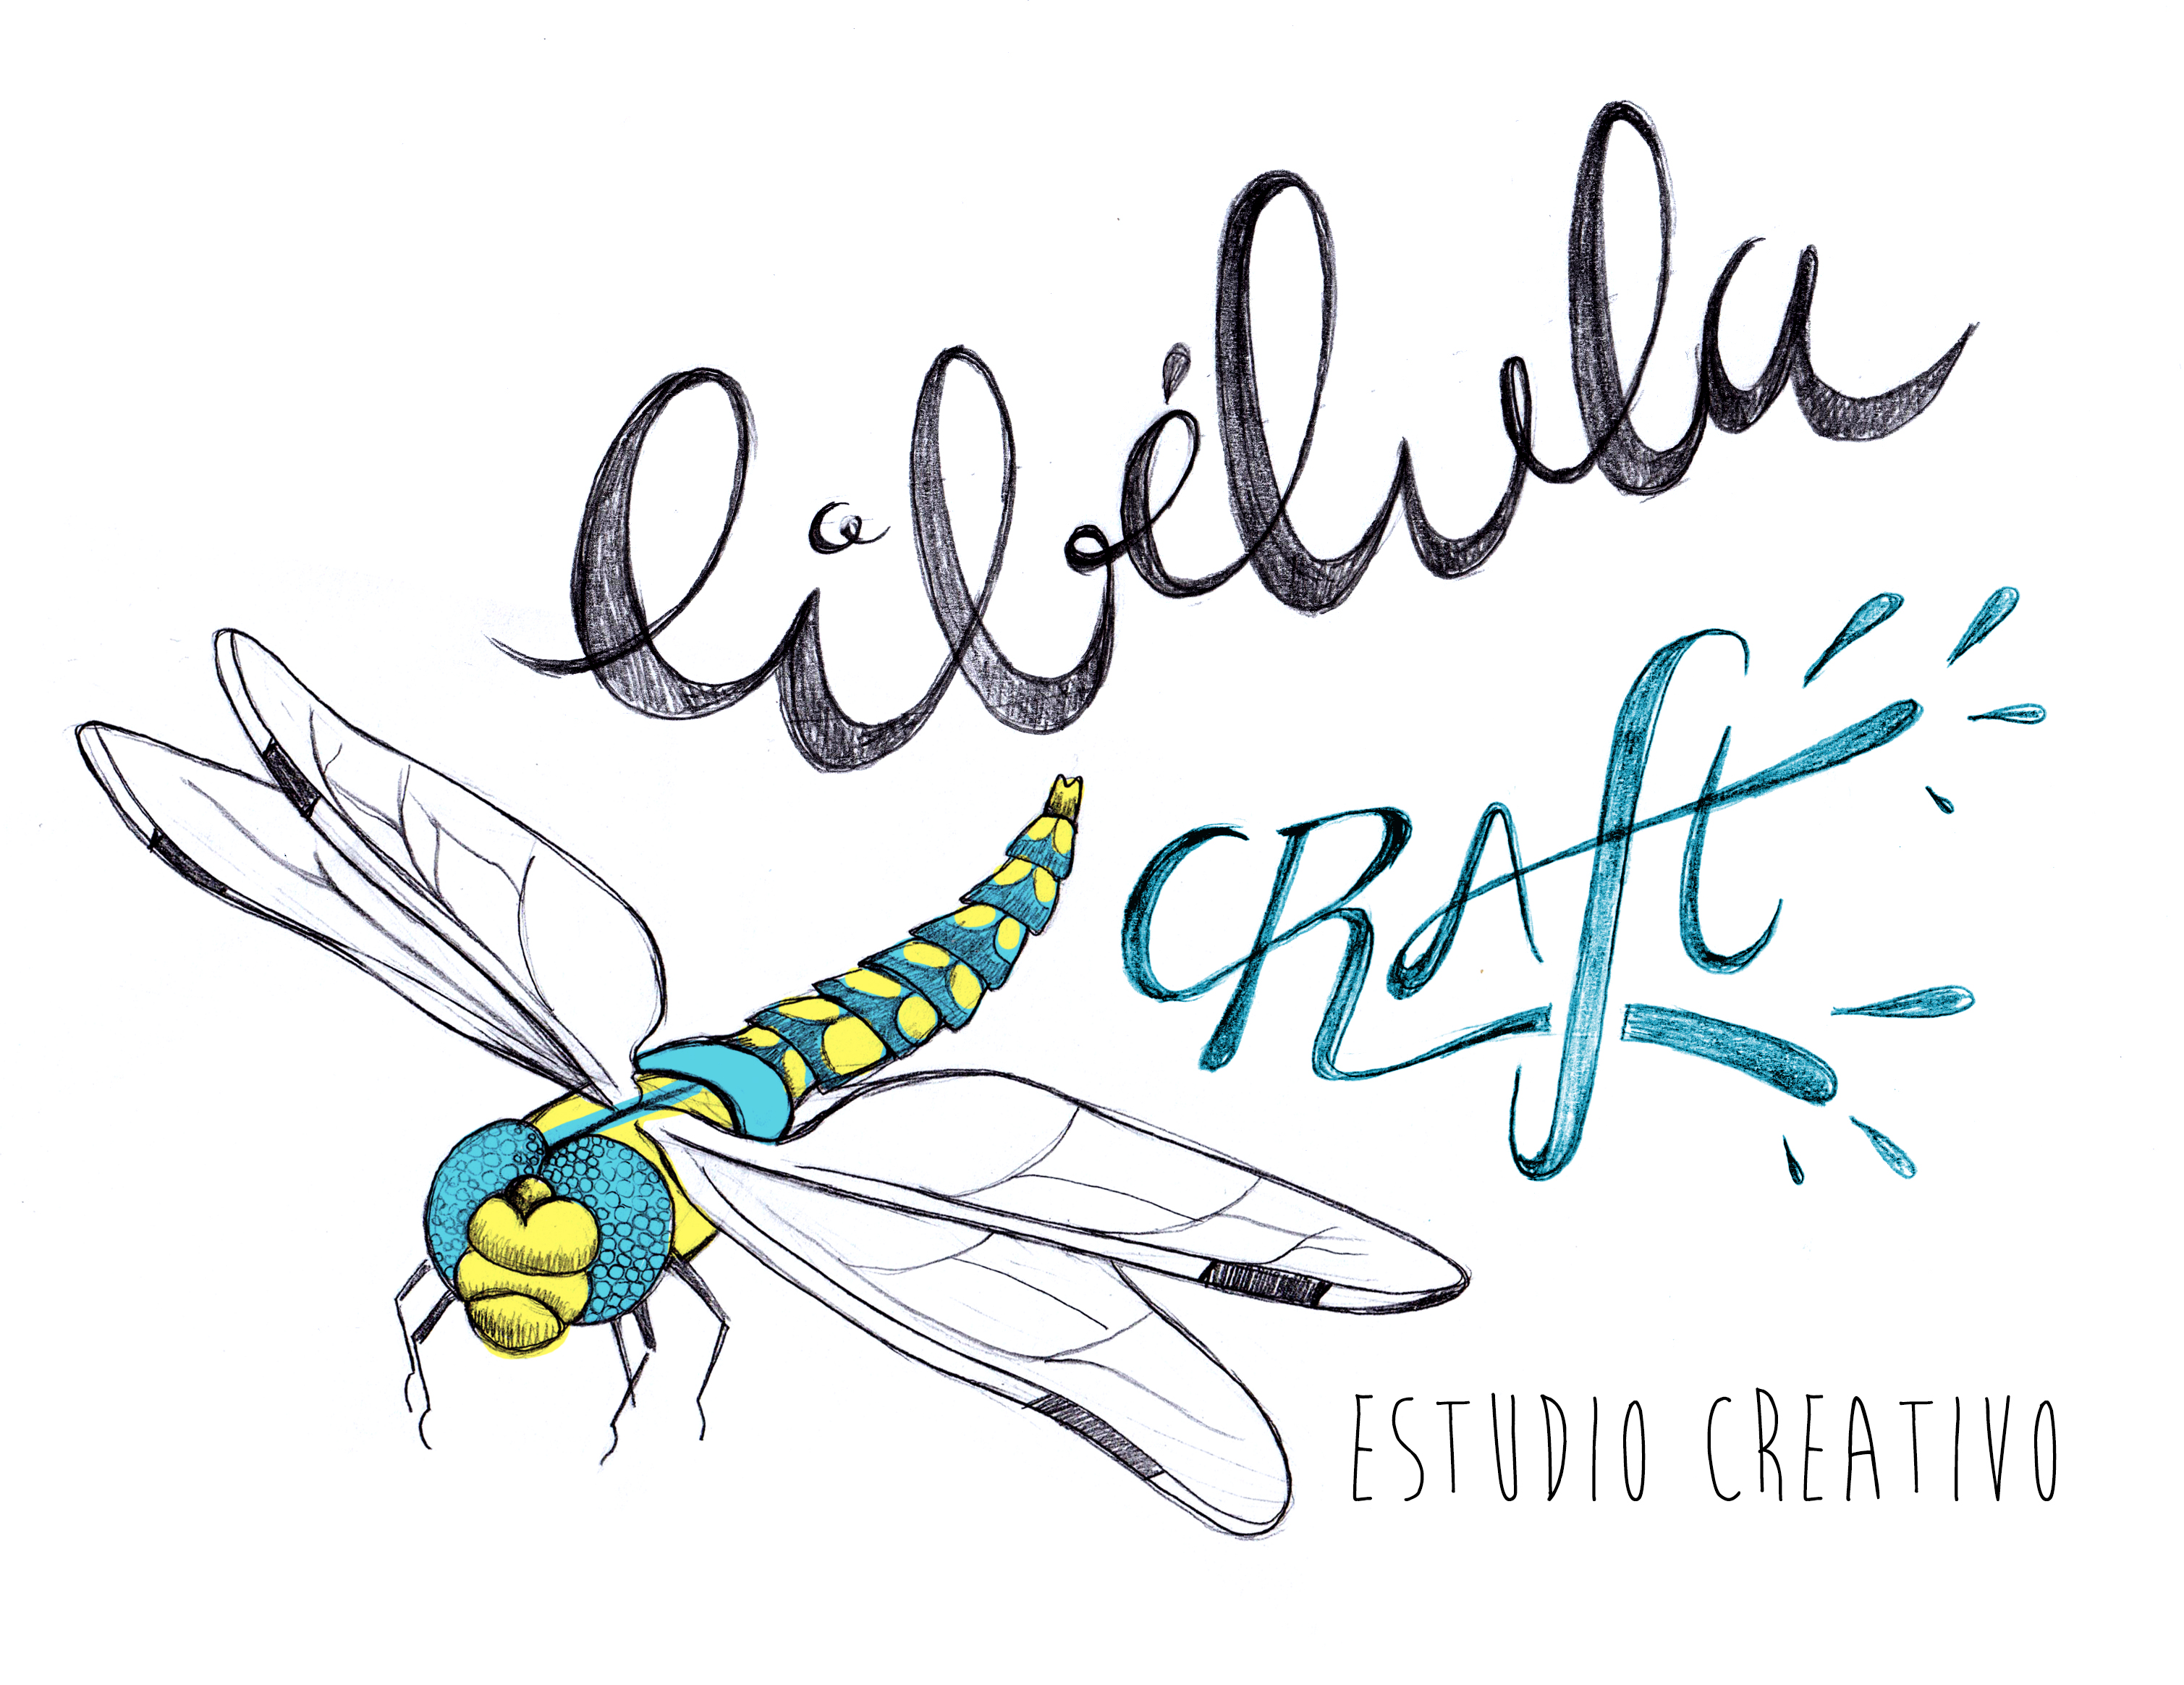 Libelula Craft - Estudio creativo